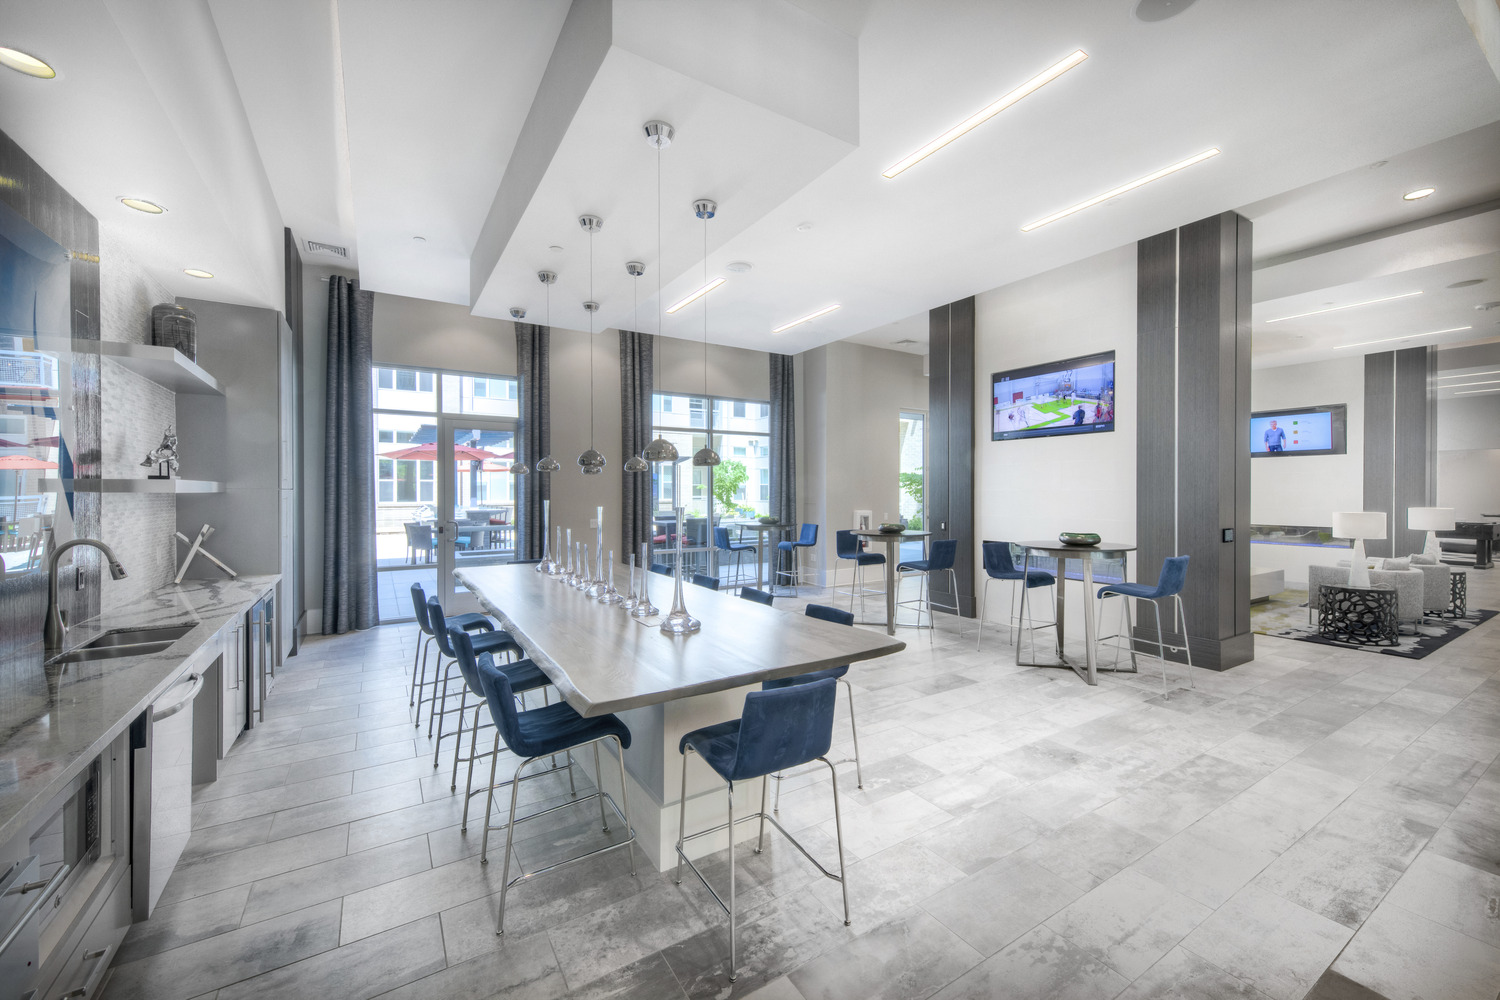 CBG builds Station on Silver, a 400-Unit Transit-Oriented Apartment Community with Parking and Amenities in Herndon, VA - Image #3